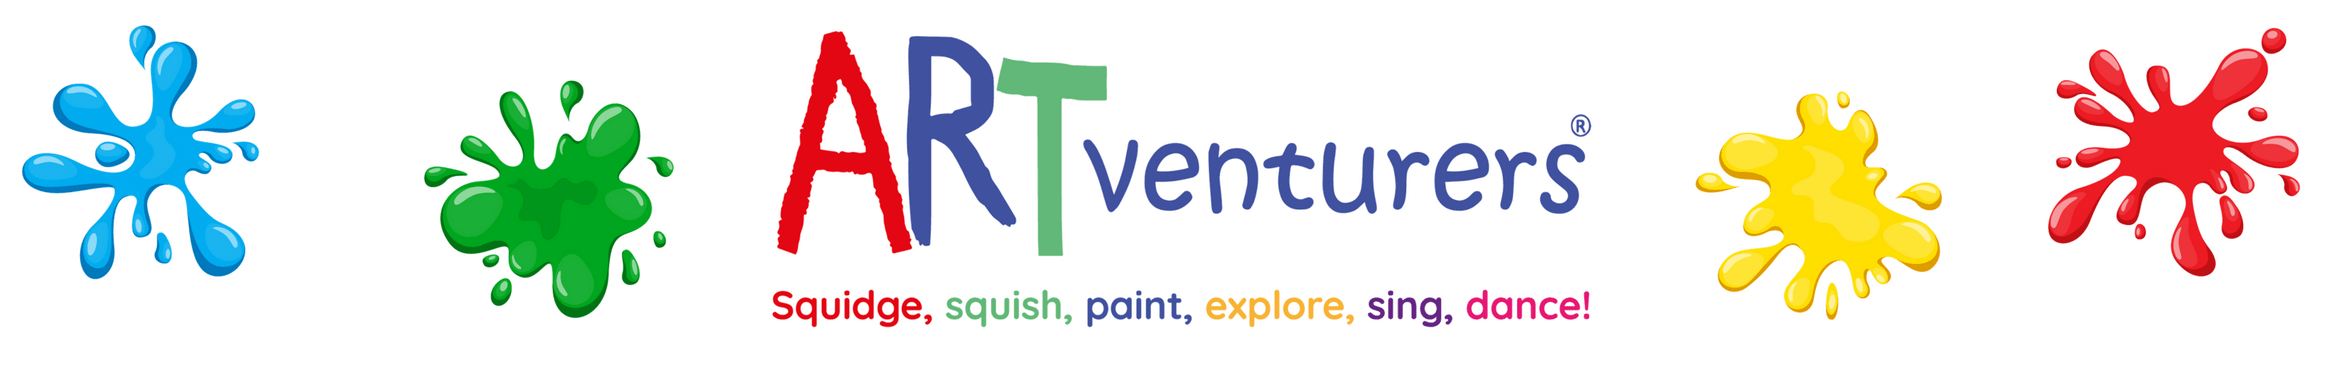 ARTventurers Lincoln West, Retford & Gainsborough